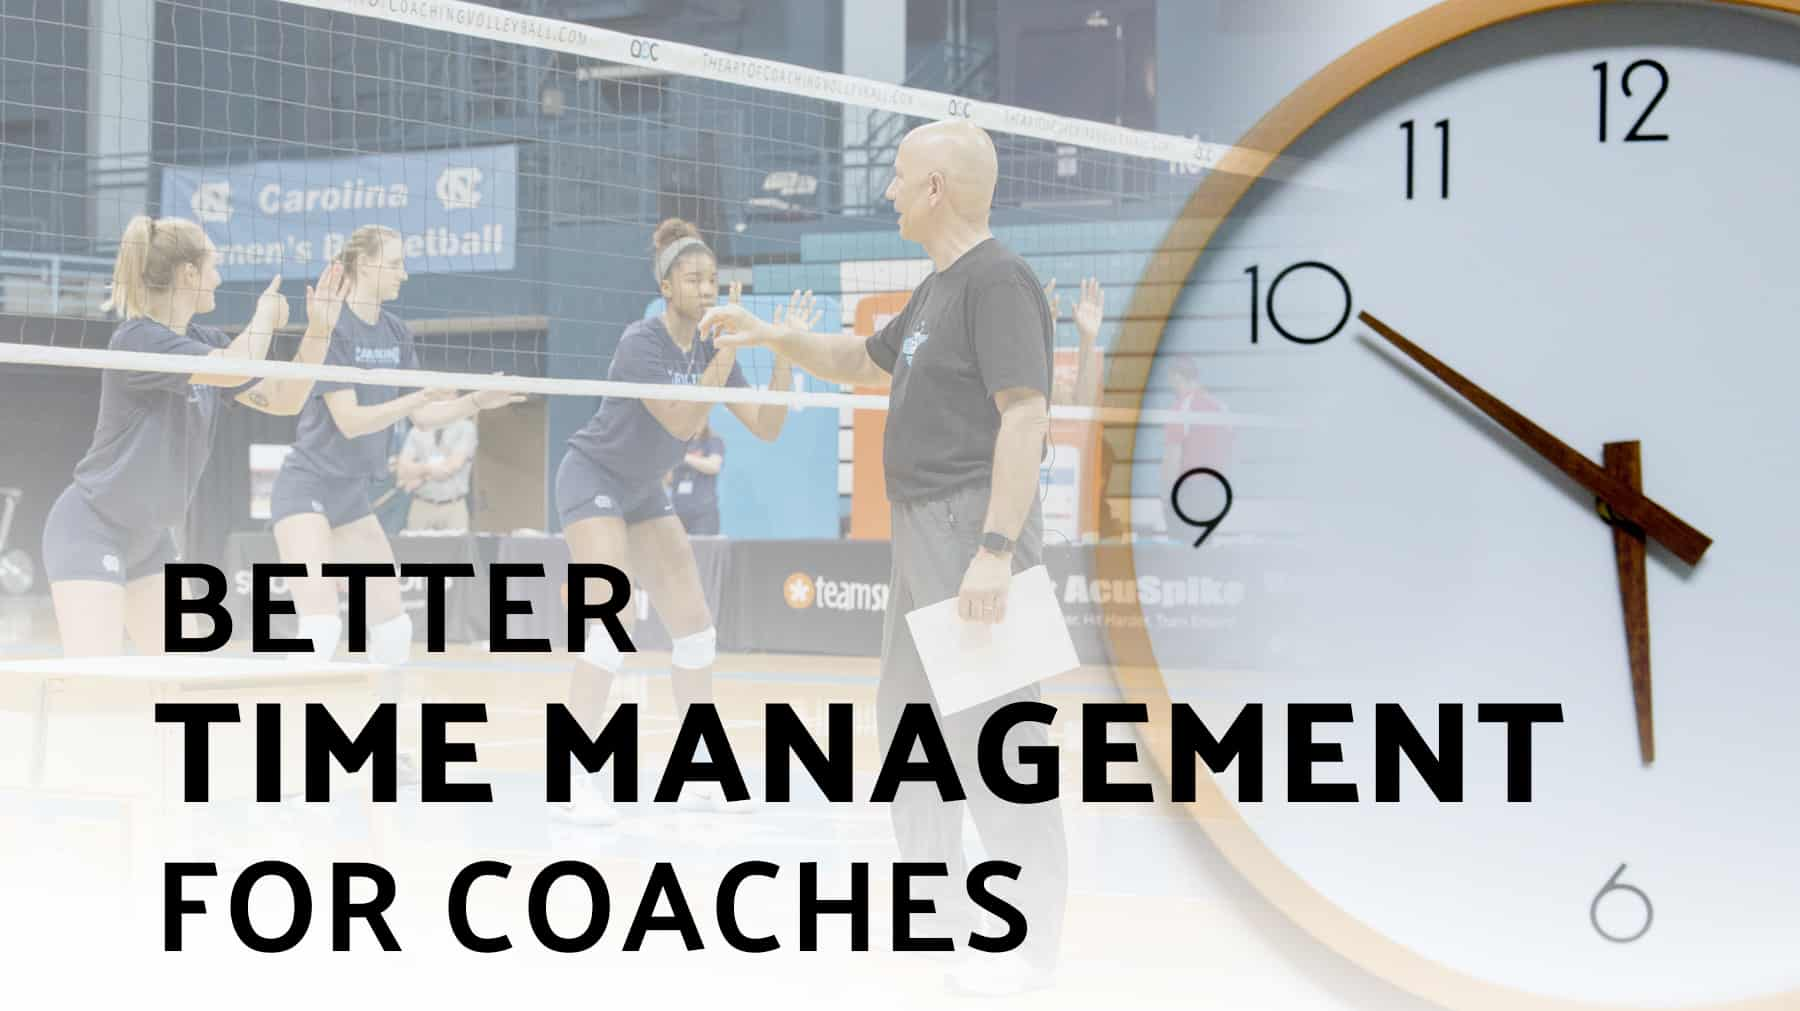 Better time management for coaches